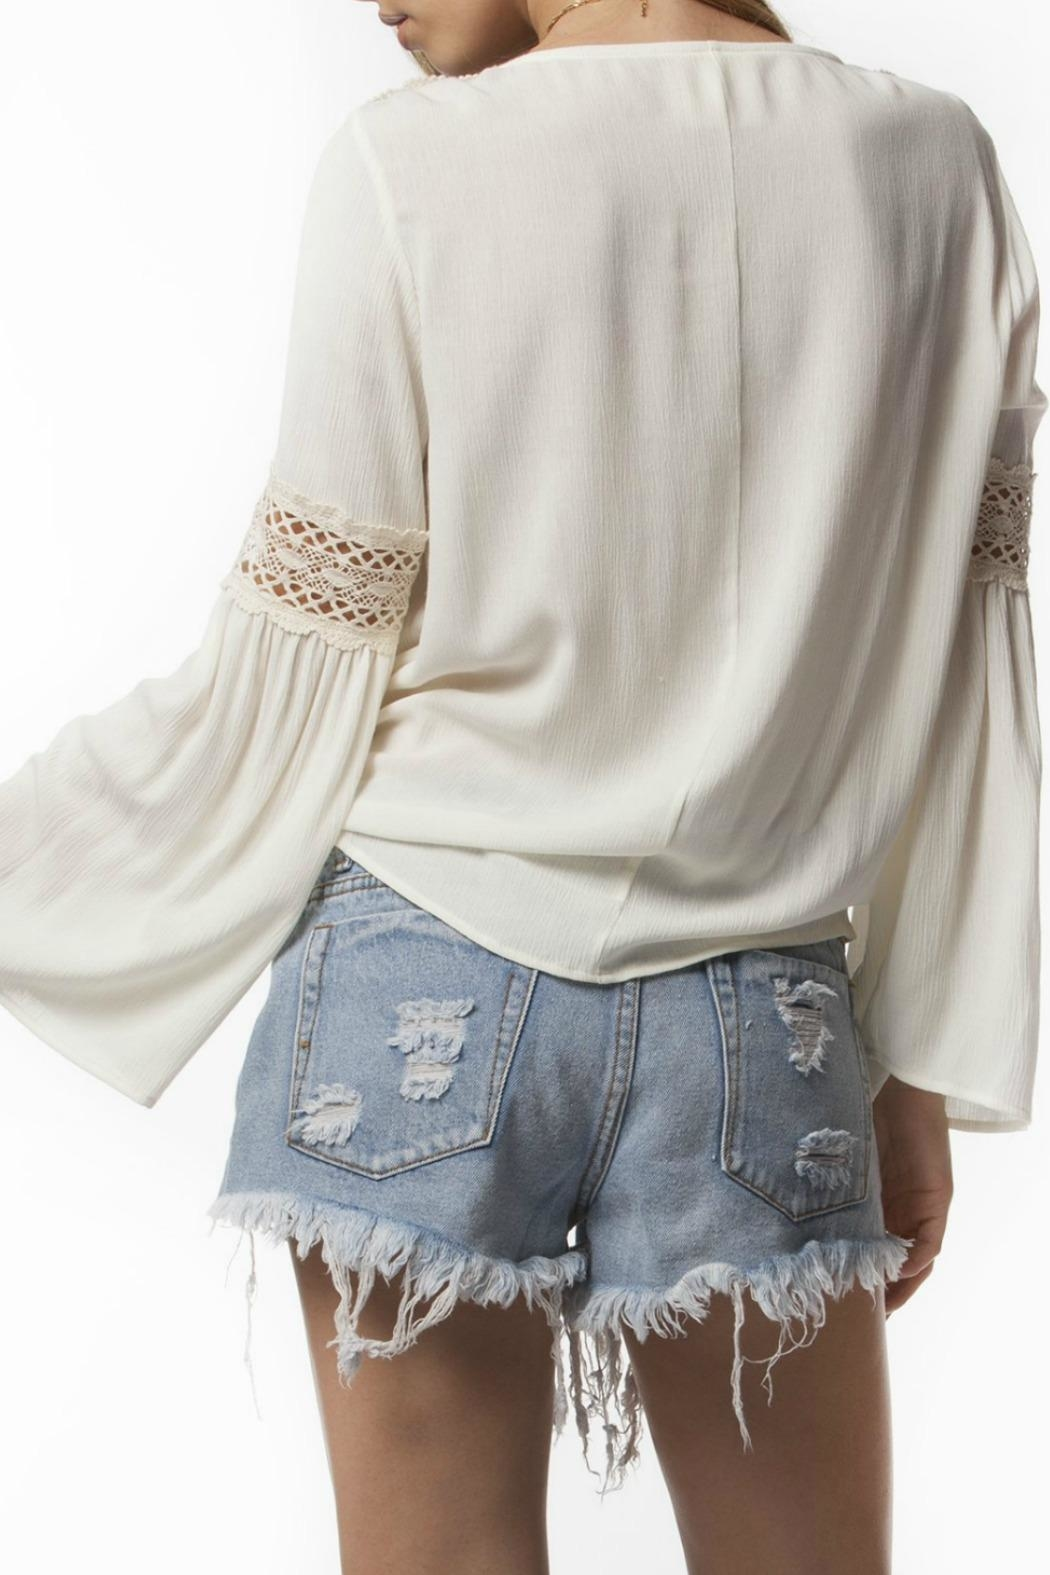 PPLA Clothing Jaclyn Top - Side Cropped Image